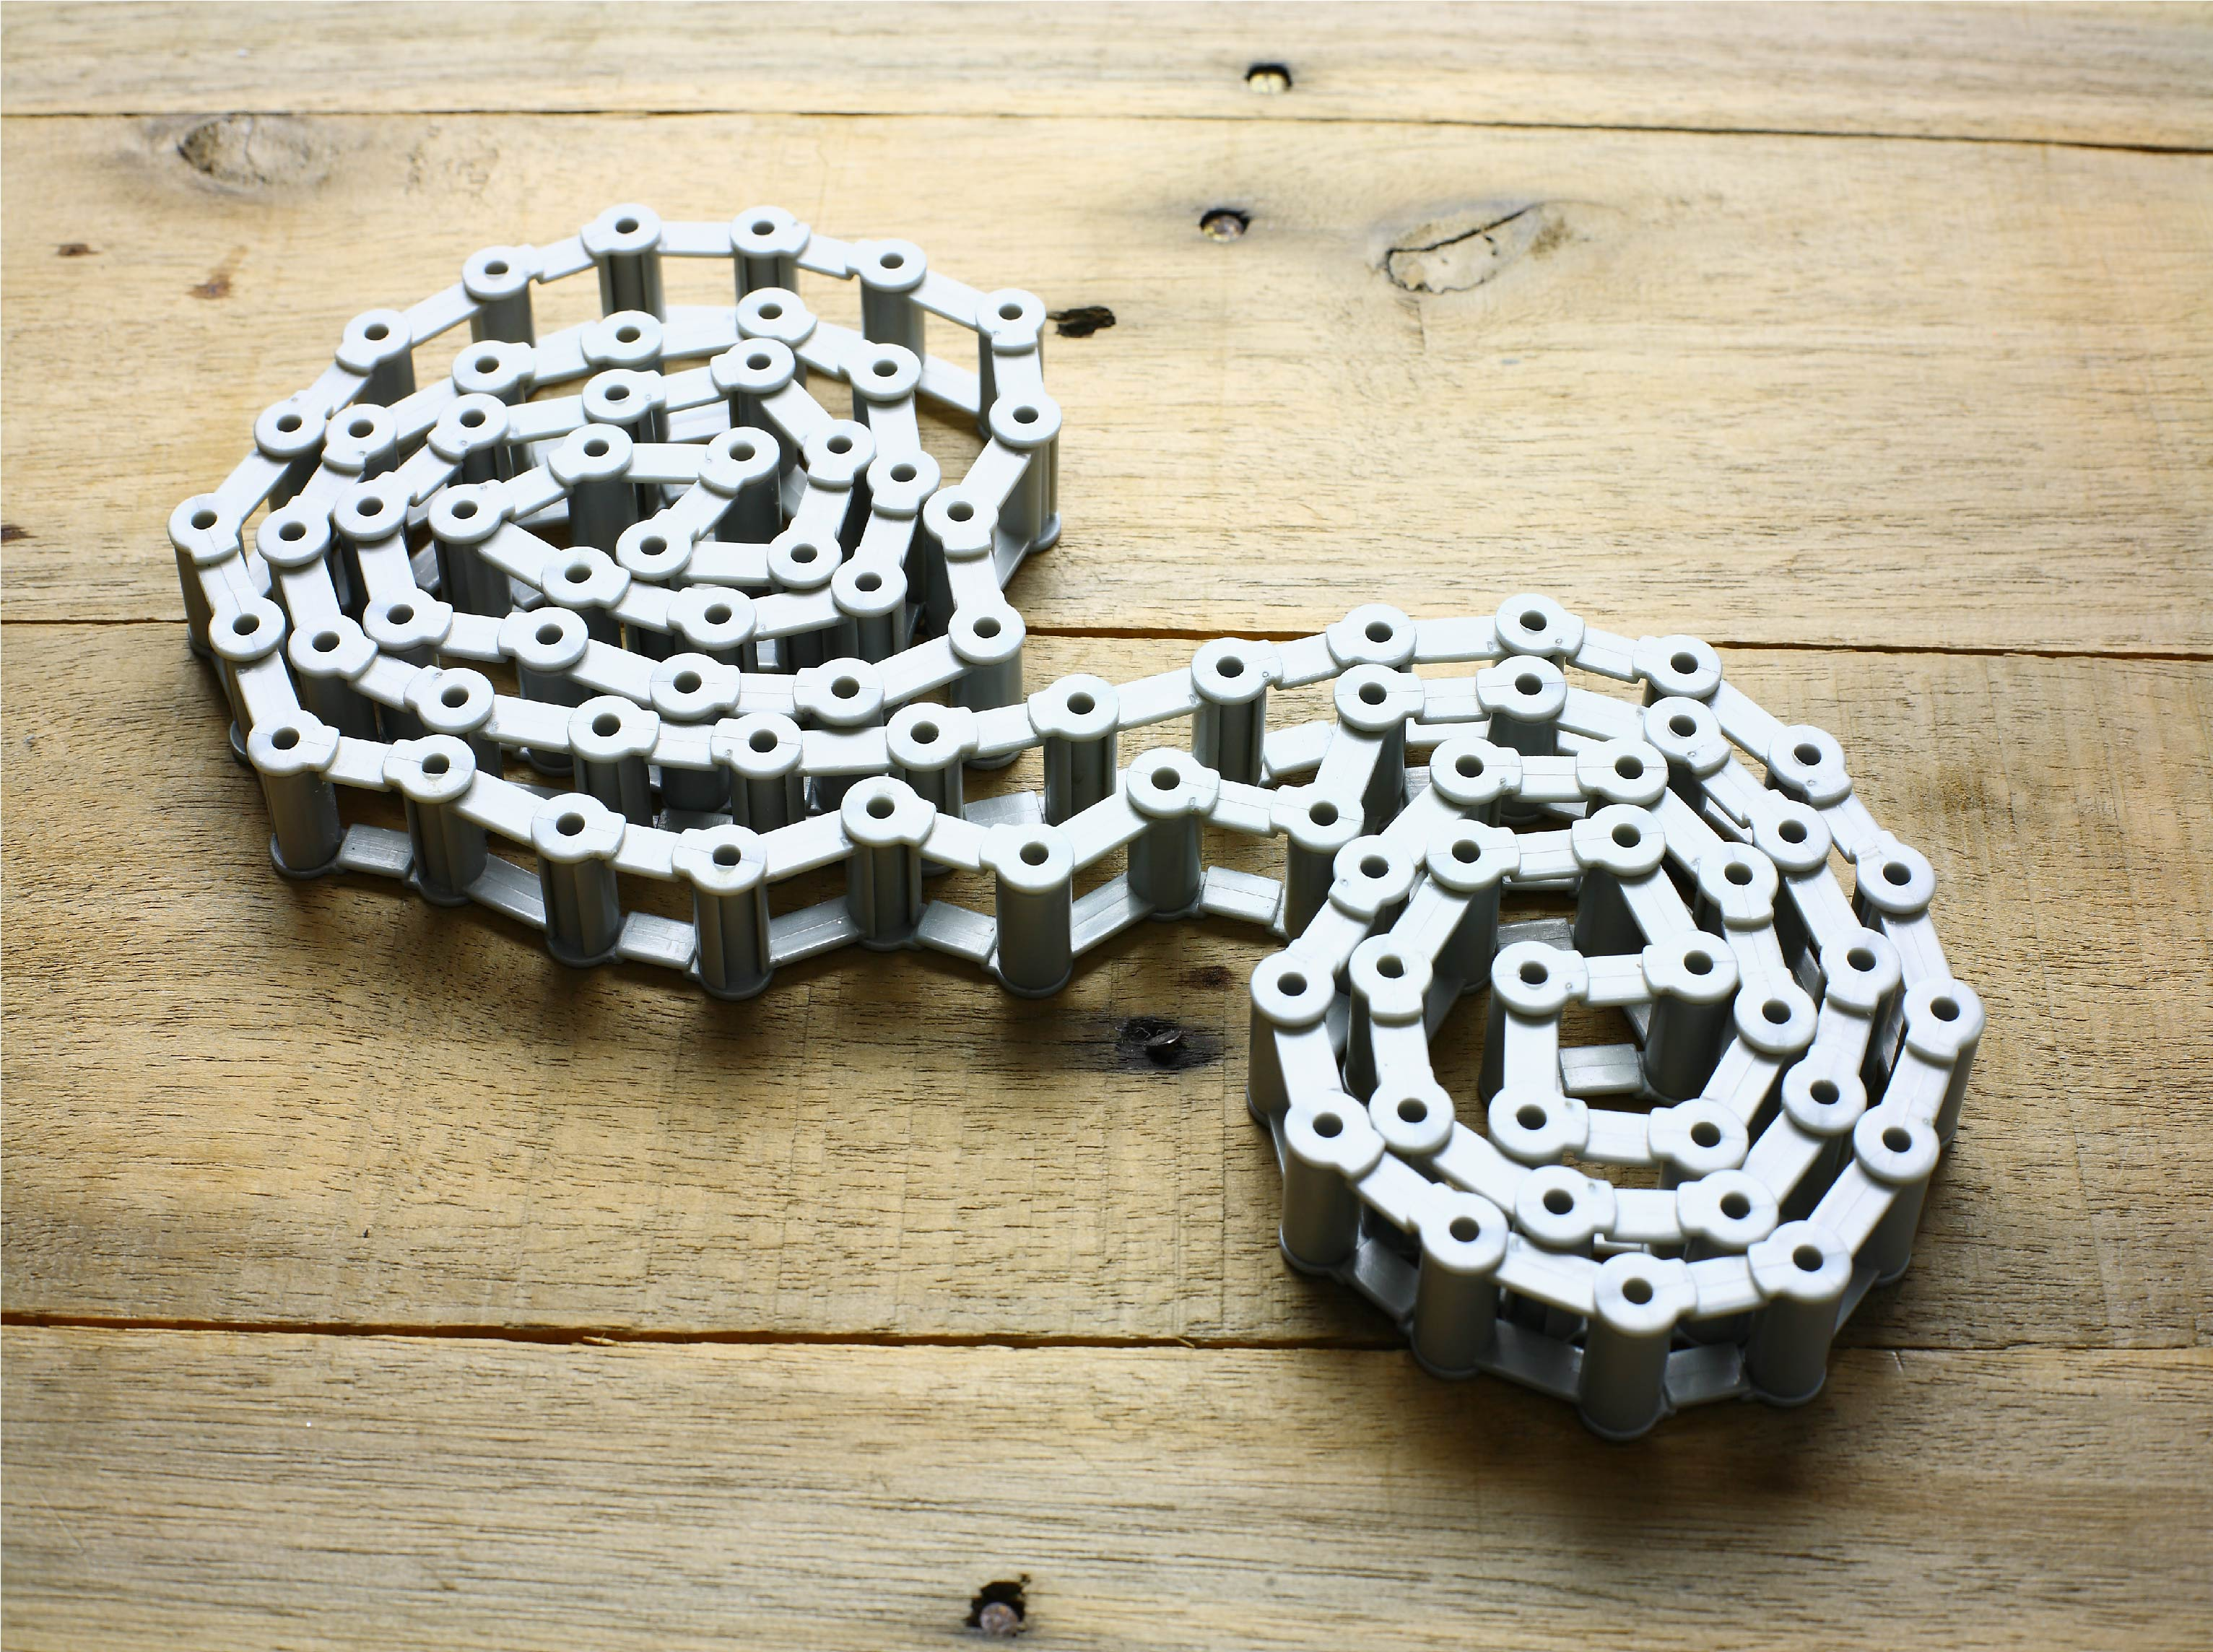 bicycle-chain-PAAHP6T